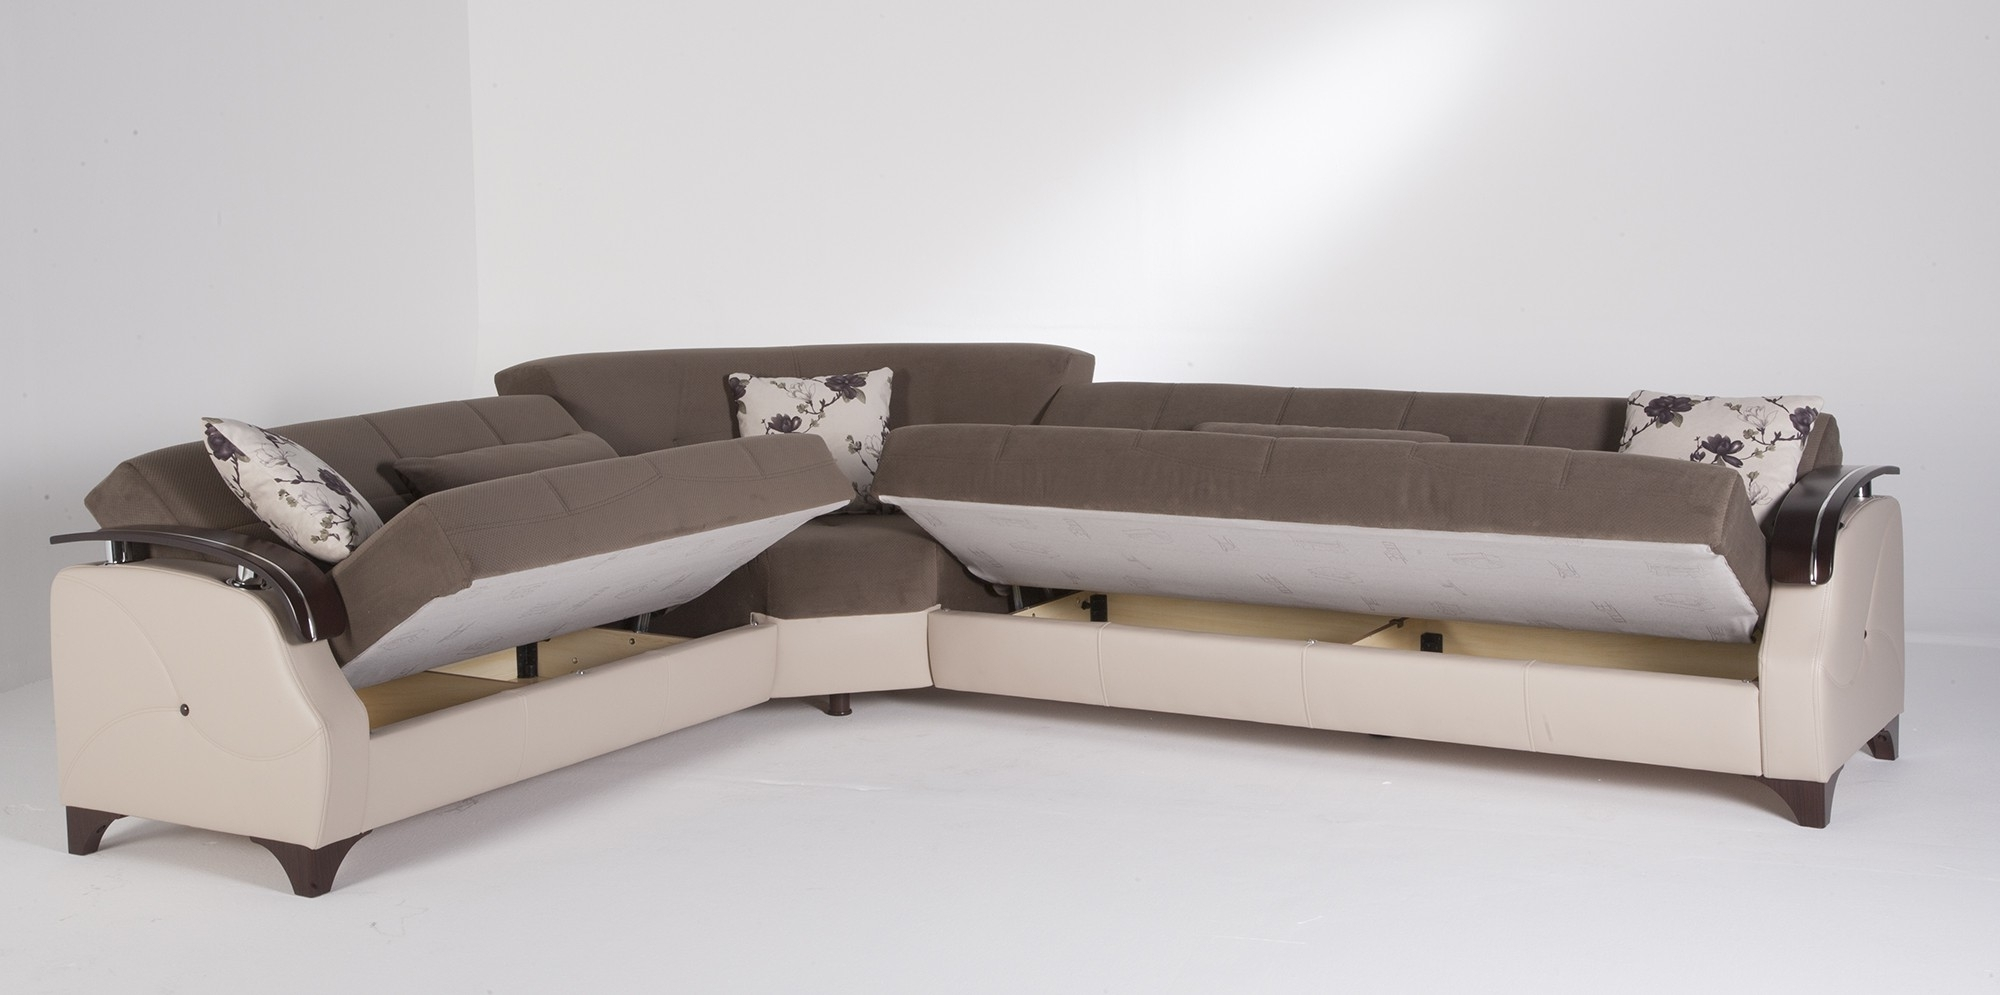 Most Current Sectional Sofas In Stock Throughout Sectional Sofa Design: Cheap Sectional Sofas Furniture Design (View 11 of 20)